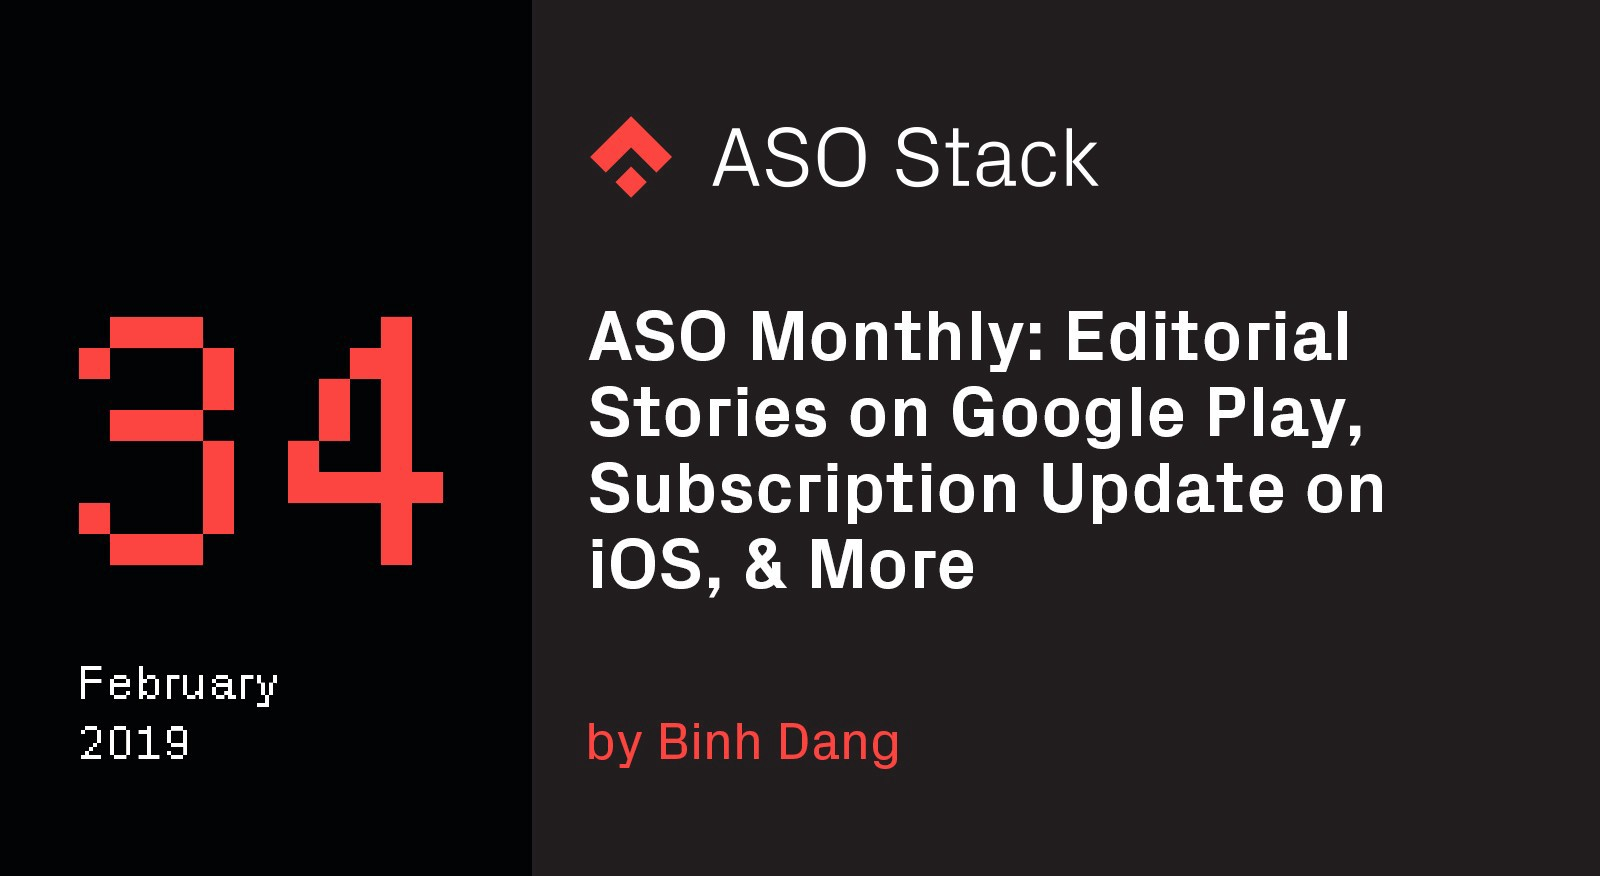 ASO Monthly #34 February 2019: Editorial Stories on Google